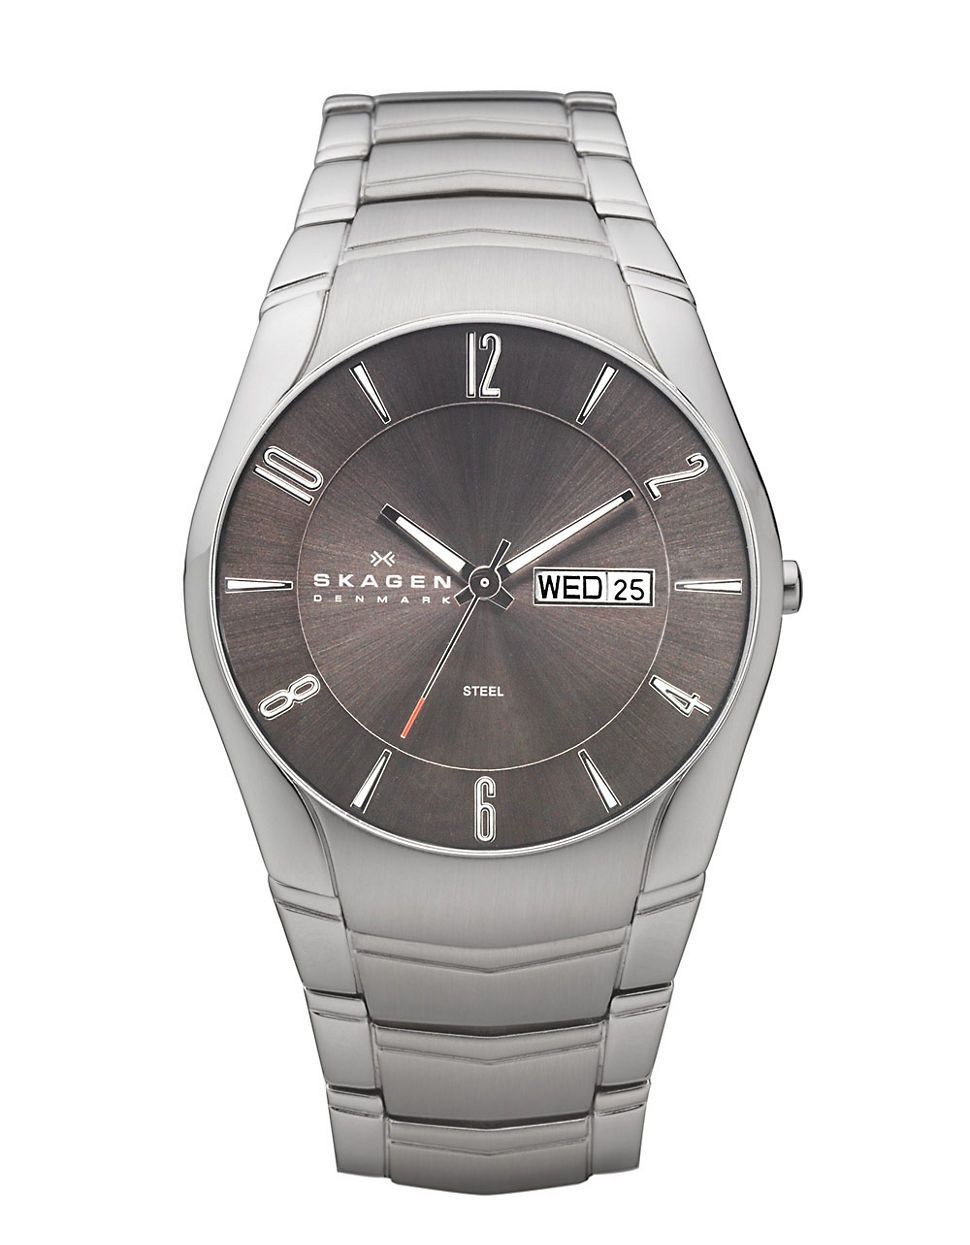 Jewellery & Accessories | Men's Watches | Men's Stainless Steel Link With Brown Dial Watch | Hudson's Bay